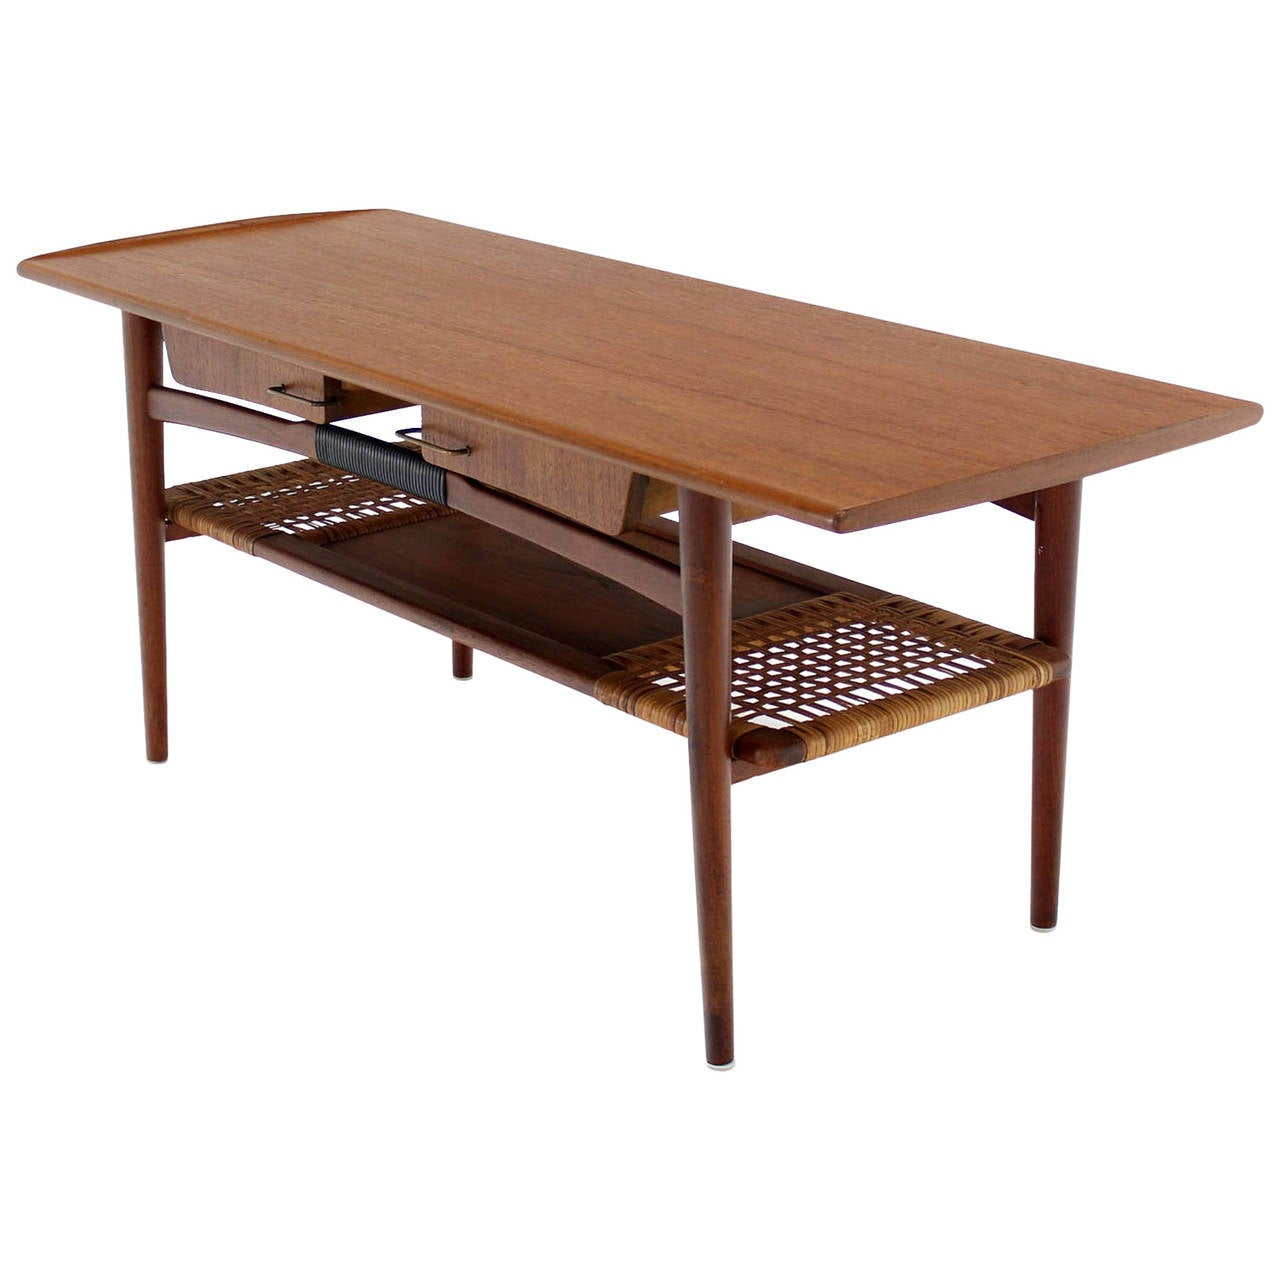 Modern Coffee Table With Storage Danish Modern Teak Coffee Table Cane Shelf Rolled Edges 4 Storage Drawers